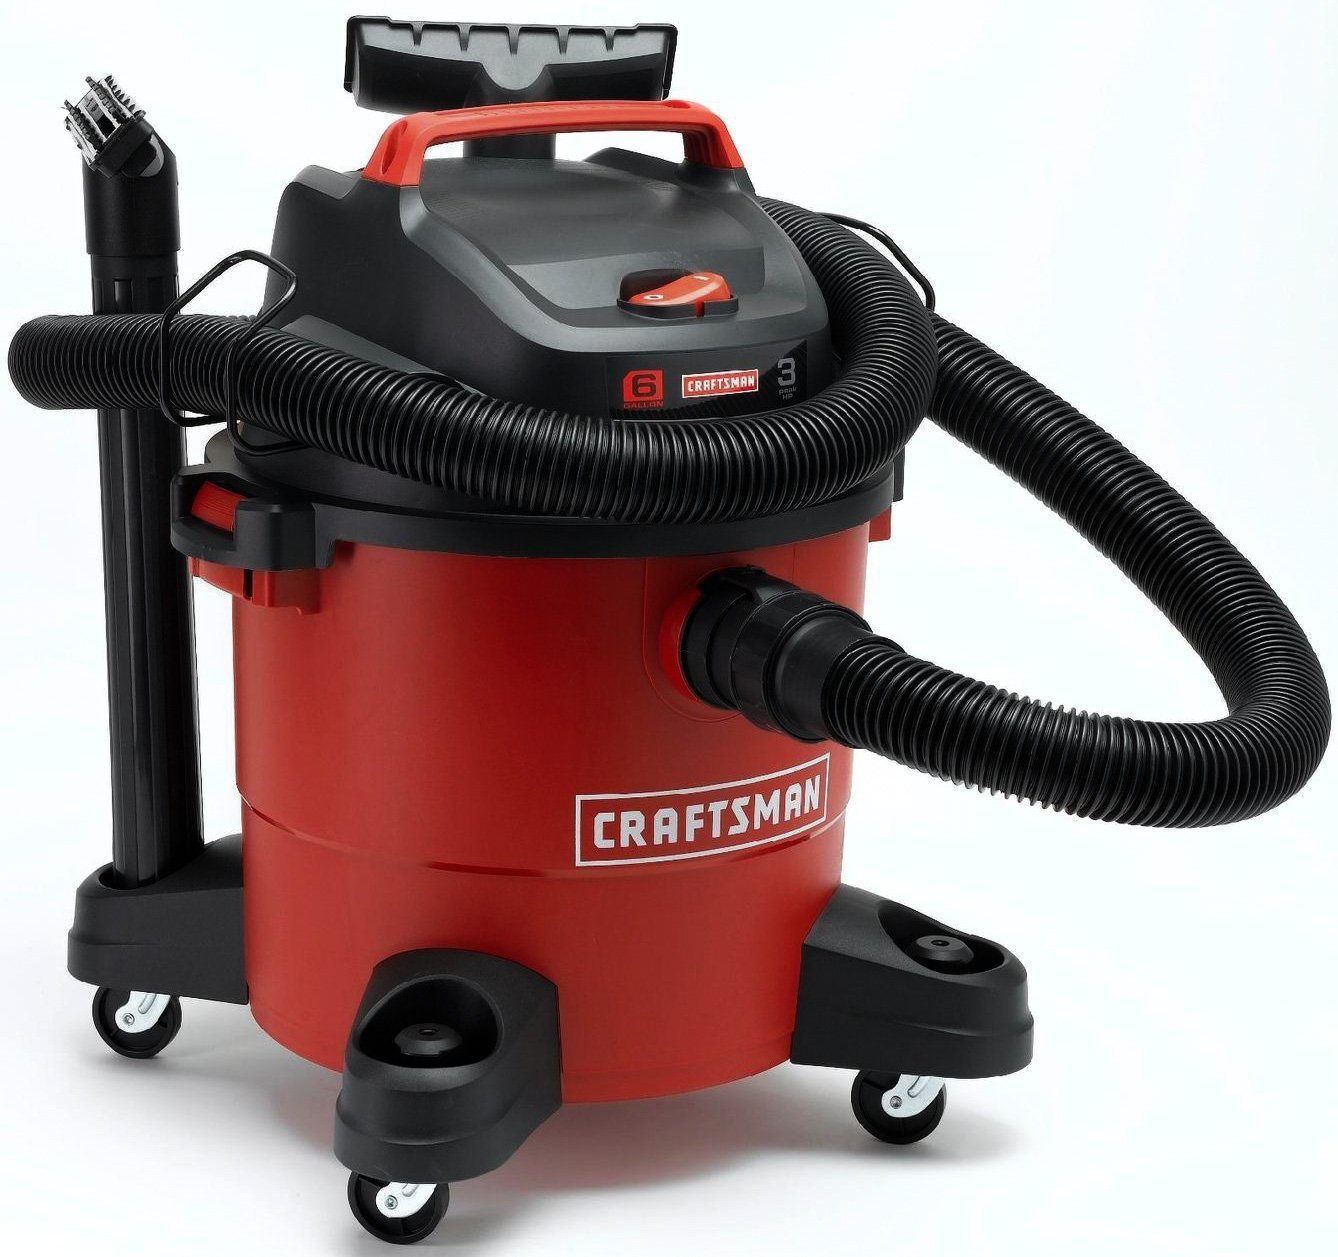 Craftsman 6 Gallon 3 Peak HP Wet/Dry Vacuum 12004